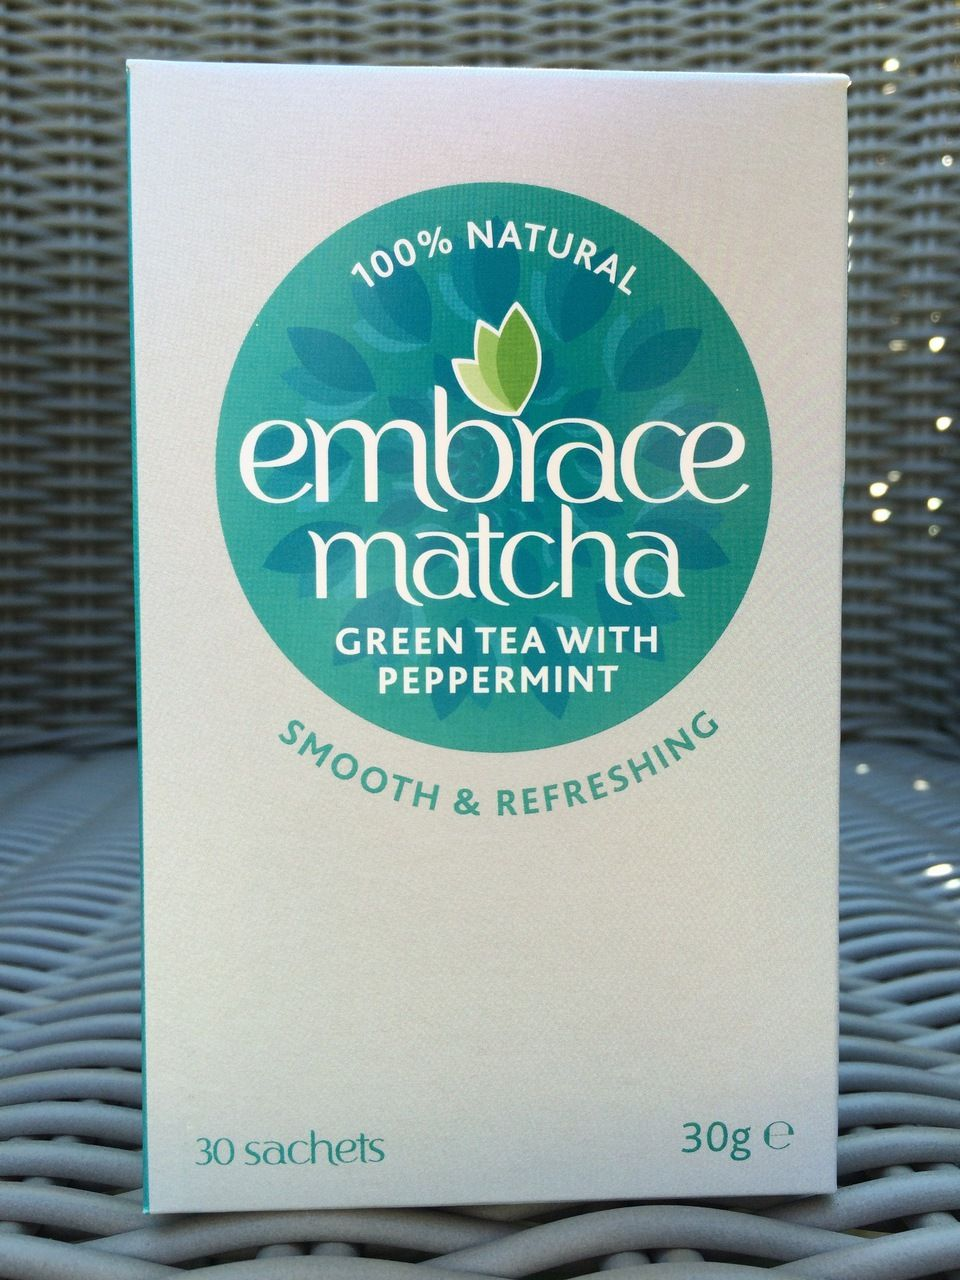 embrace matcha - Green Tea with Peppermint 30 x 1g sachets (Free UK Delivery), £24.99 (http://www.embracematcha.com/green-tea-with-peppermint-30-x-1g-sachets-free-uk-delivery/)